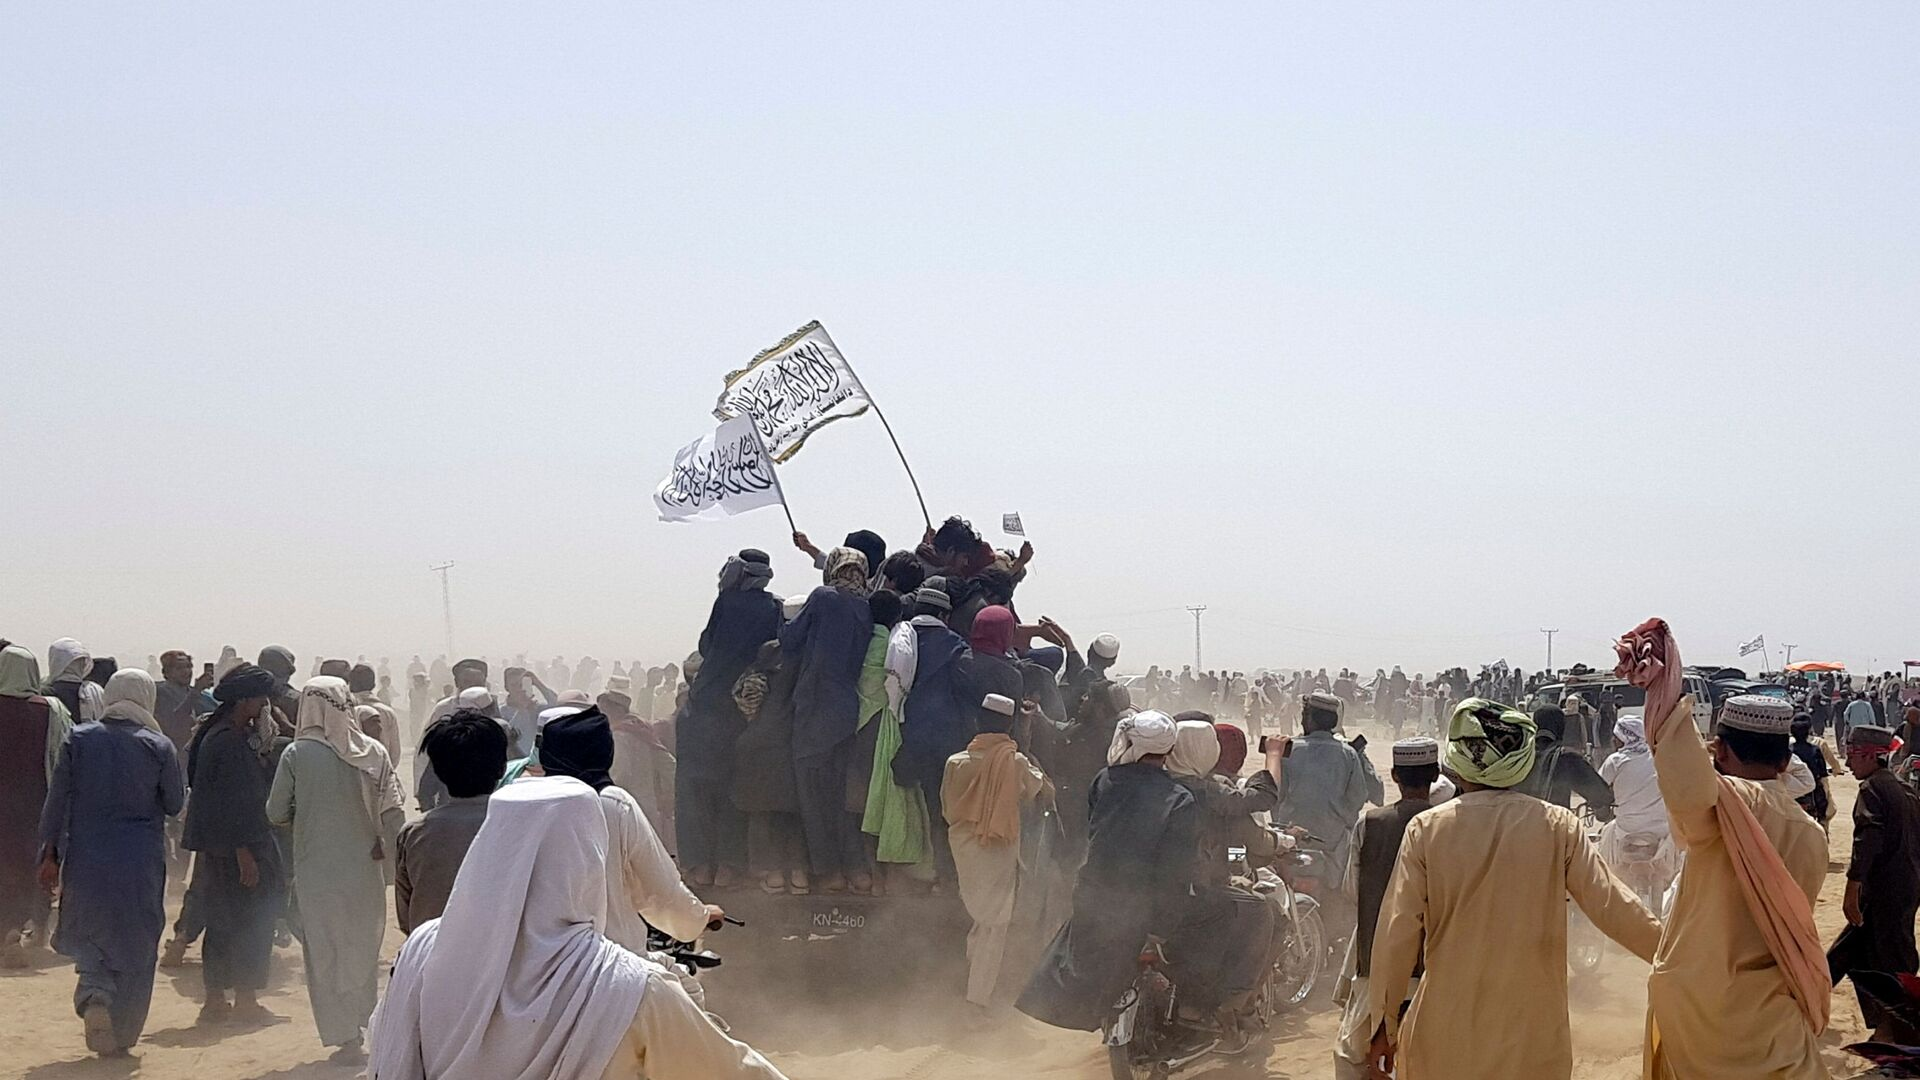 People standing on a vehicle hold Taliban flags as people gather near the Friendship Gate crossing point in the Pakistan-Afghanistan border town of Chaman, Pakistan July 14, 2021. Picture taken July 14, 2021. - Sputnik International, 1920, 07.09.2021